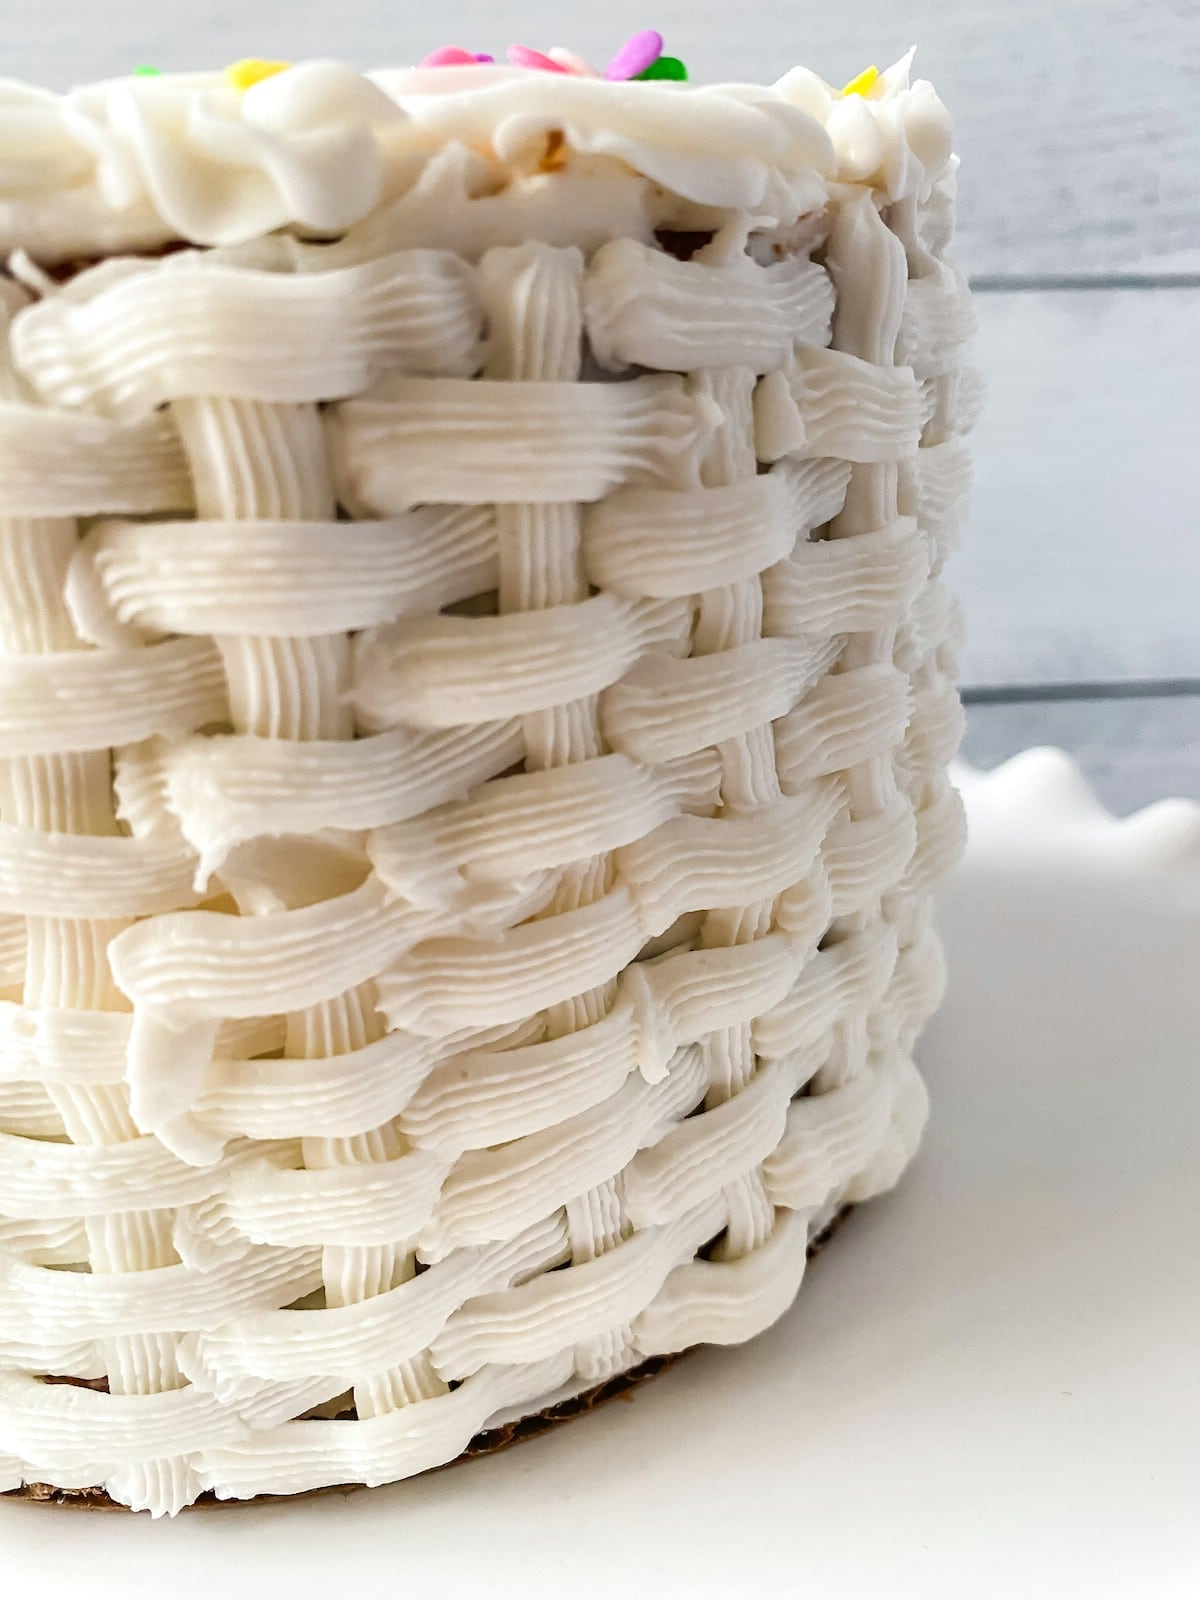 Close up of basket weave detail on iced cake